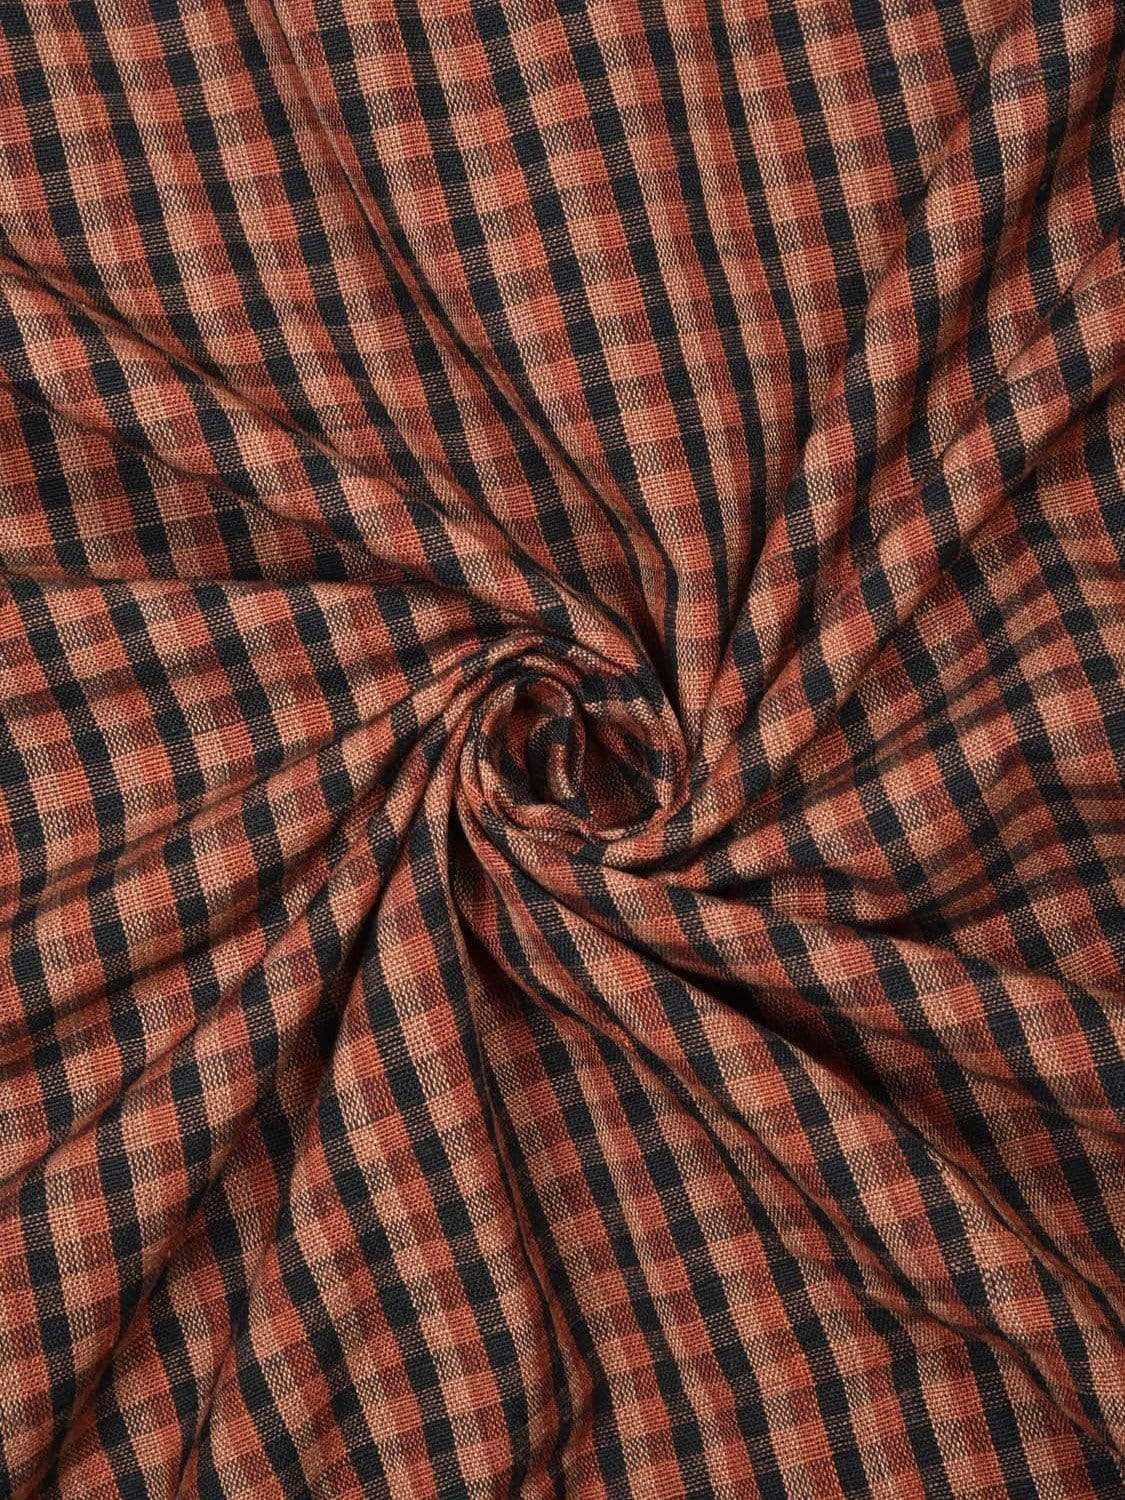 Brown Cotton Handloom Fabric Material with Small Checks Design f0149